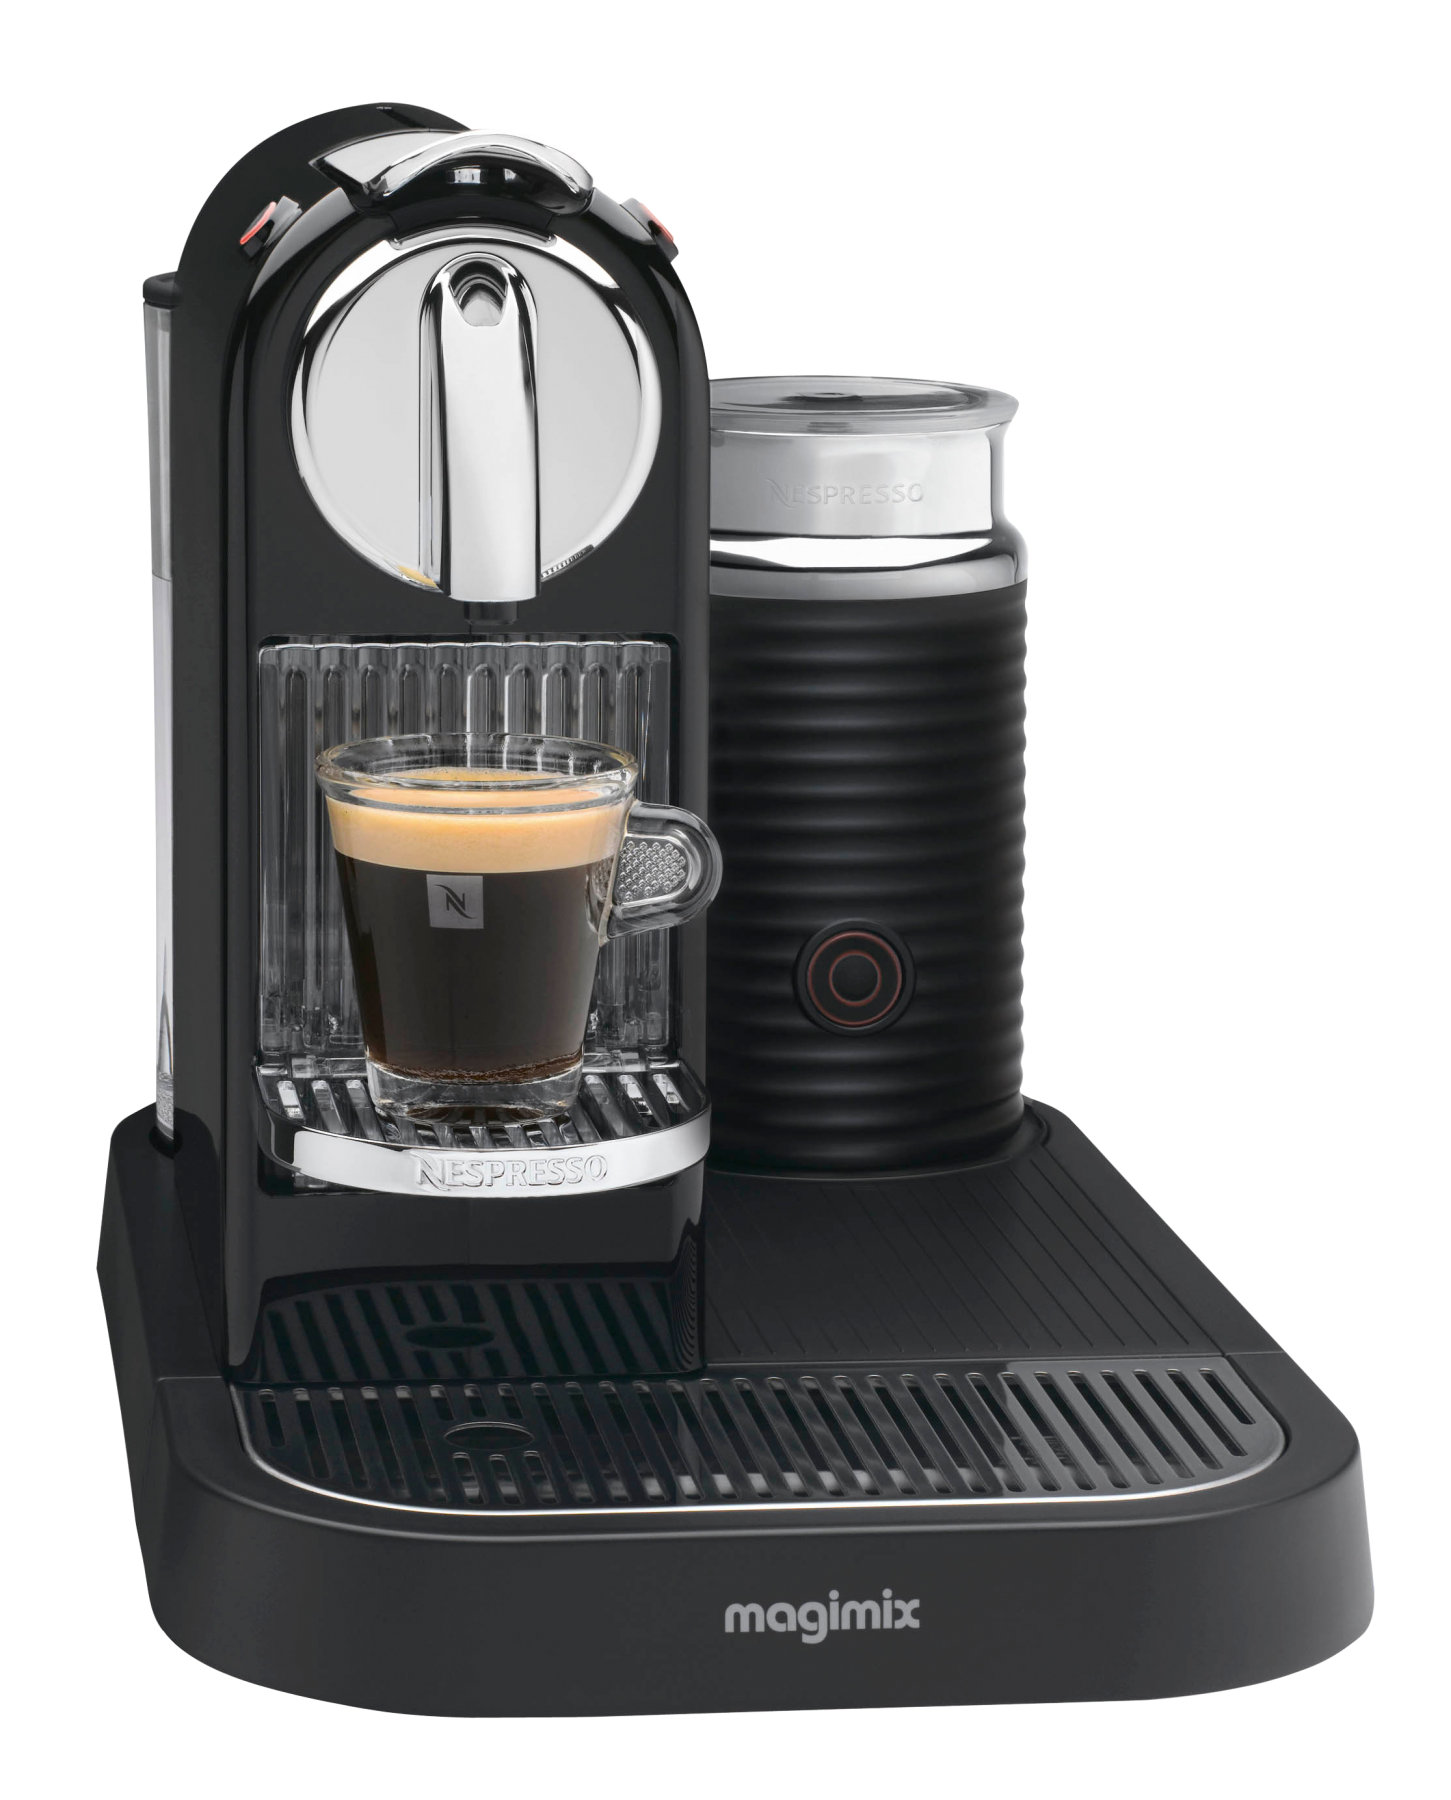 nespresso citiz milk noir automatique magimix 11306 capsules compatibles nespresso moins. Black Bedroom Furniture Sets. Home Design Ideas